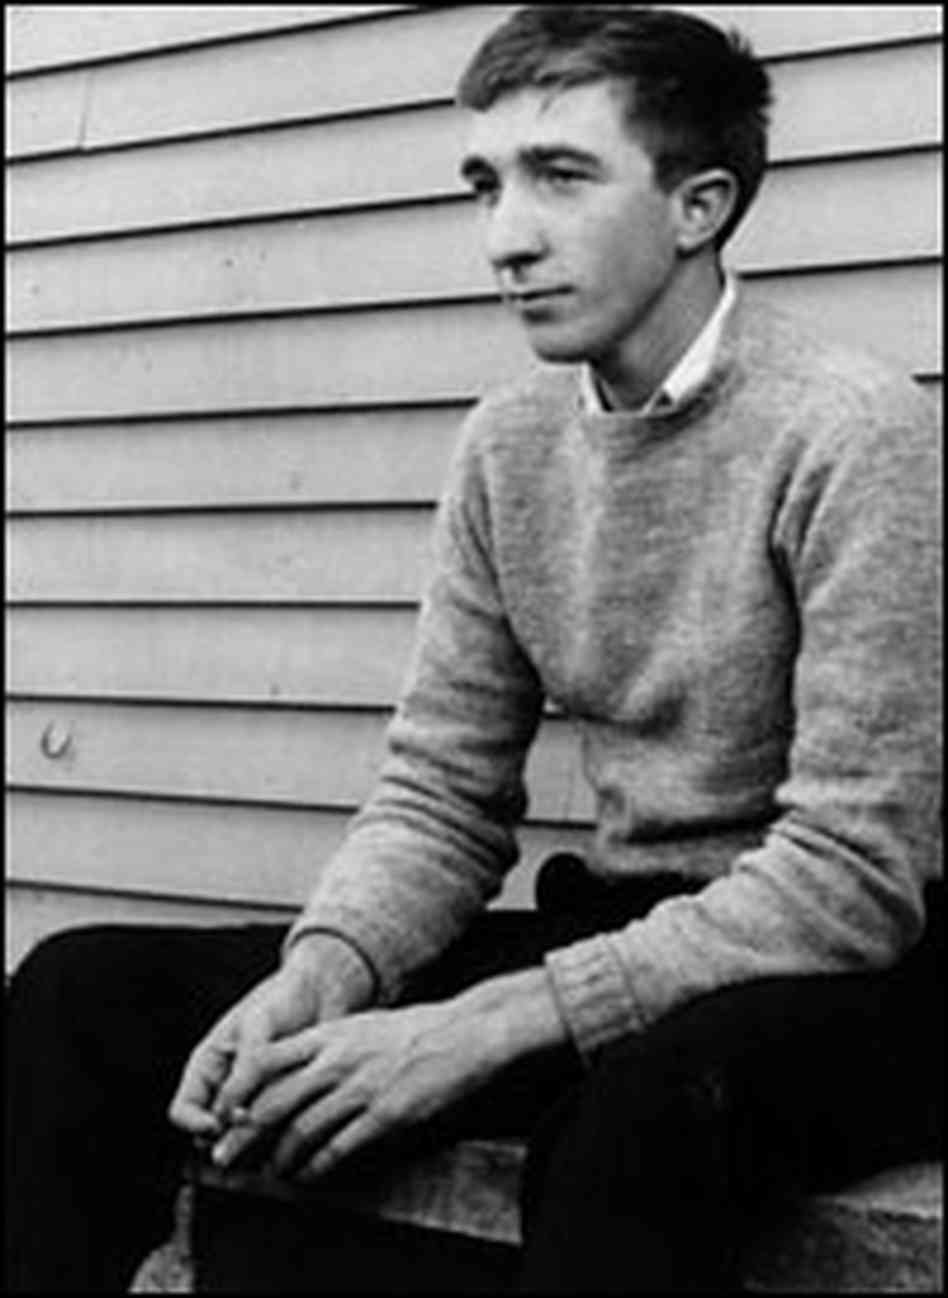 perfection wasted john updike essay perfection not wasted Literature: an introduction to reading and writing,  and completing the essay writing does not come easily—for anyone   john updike perfection wasted.